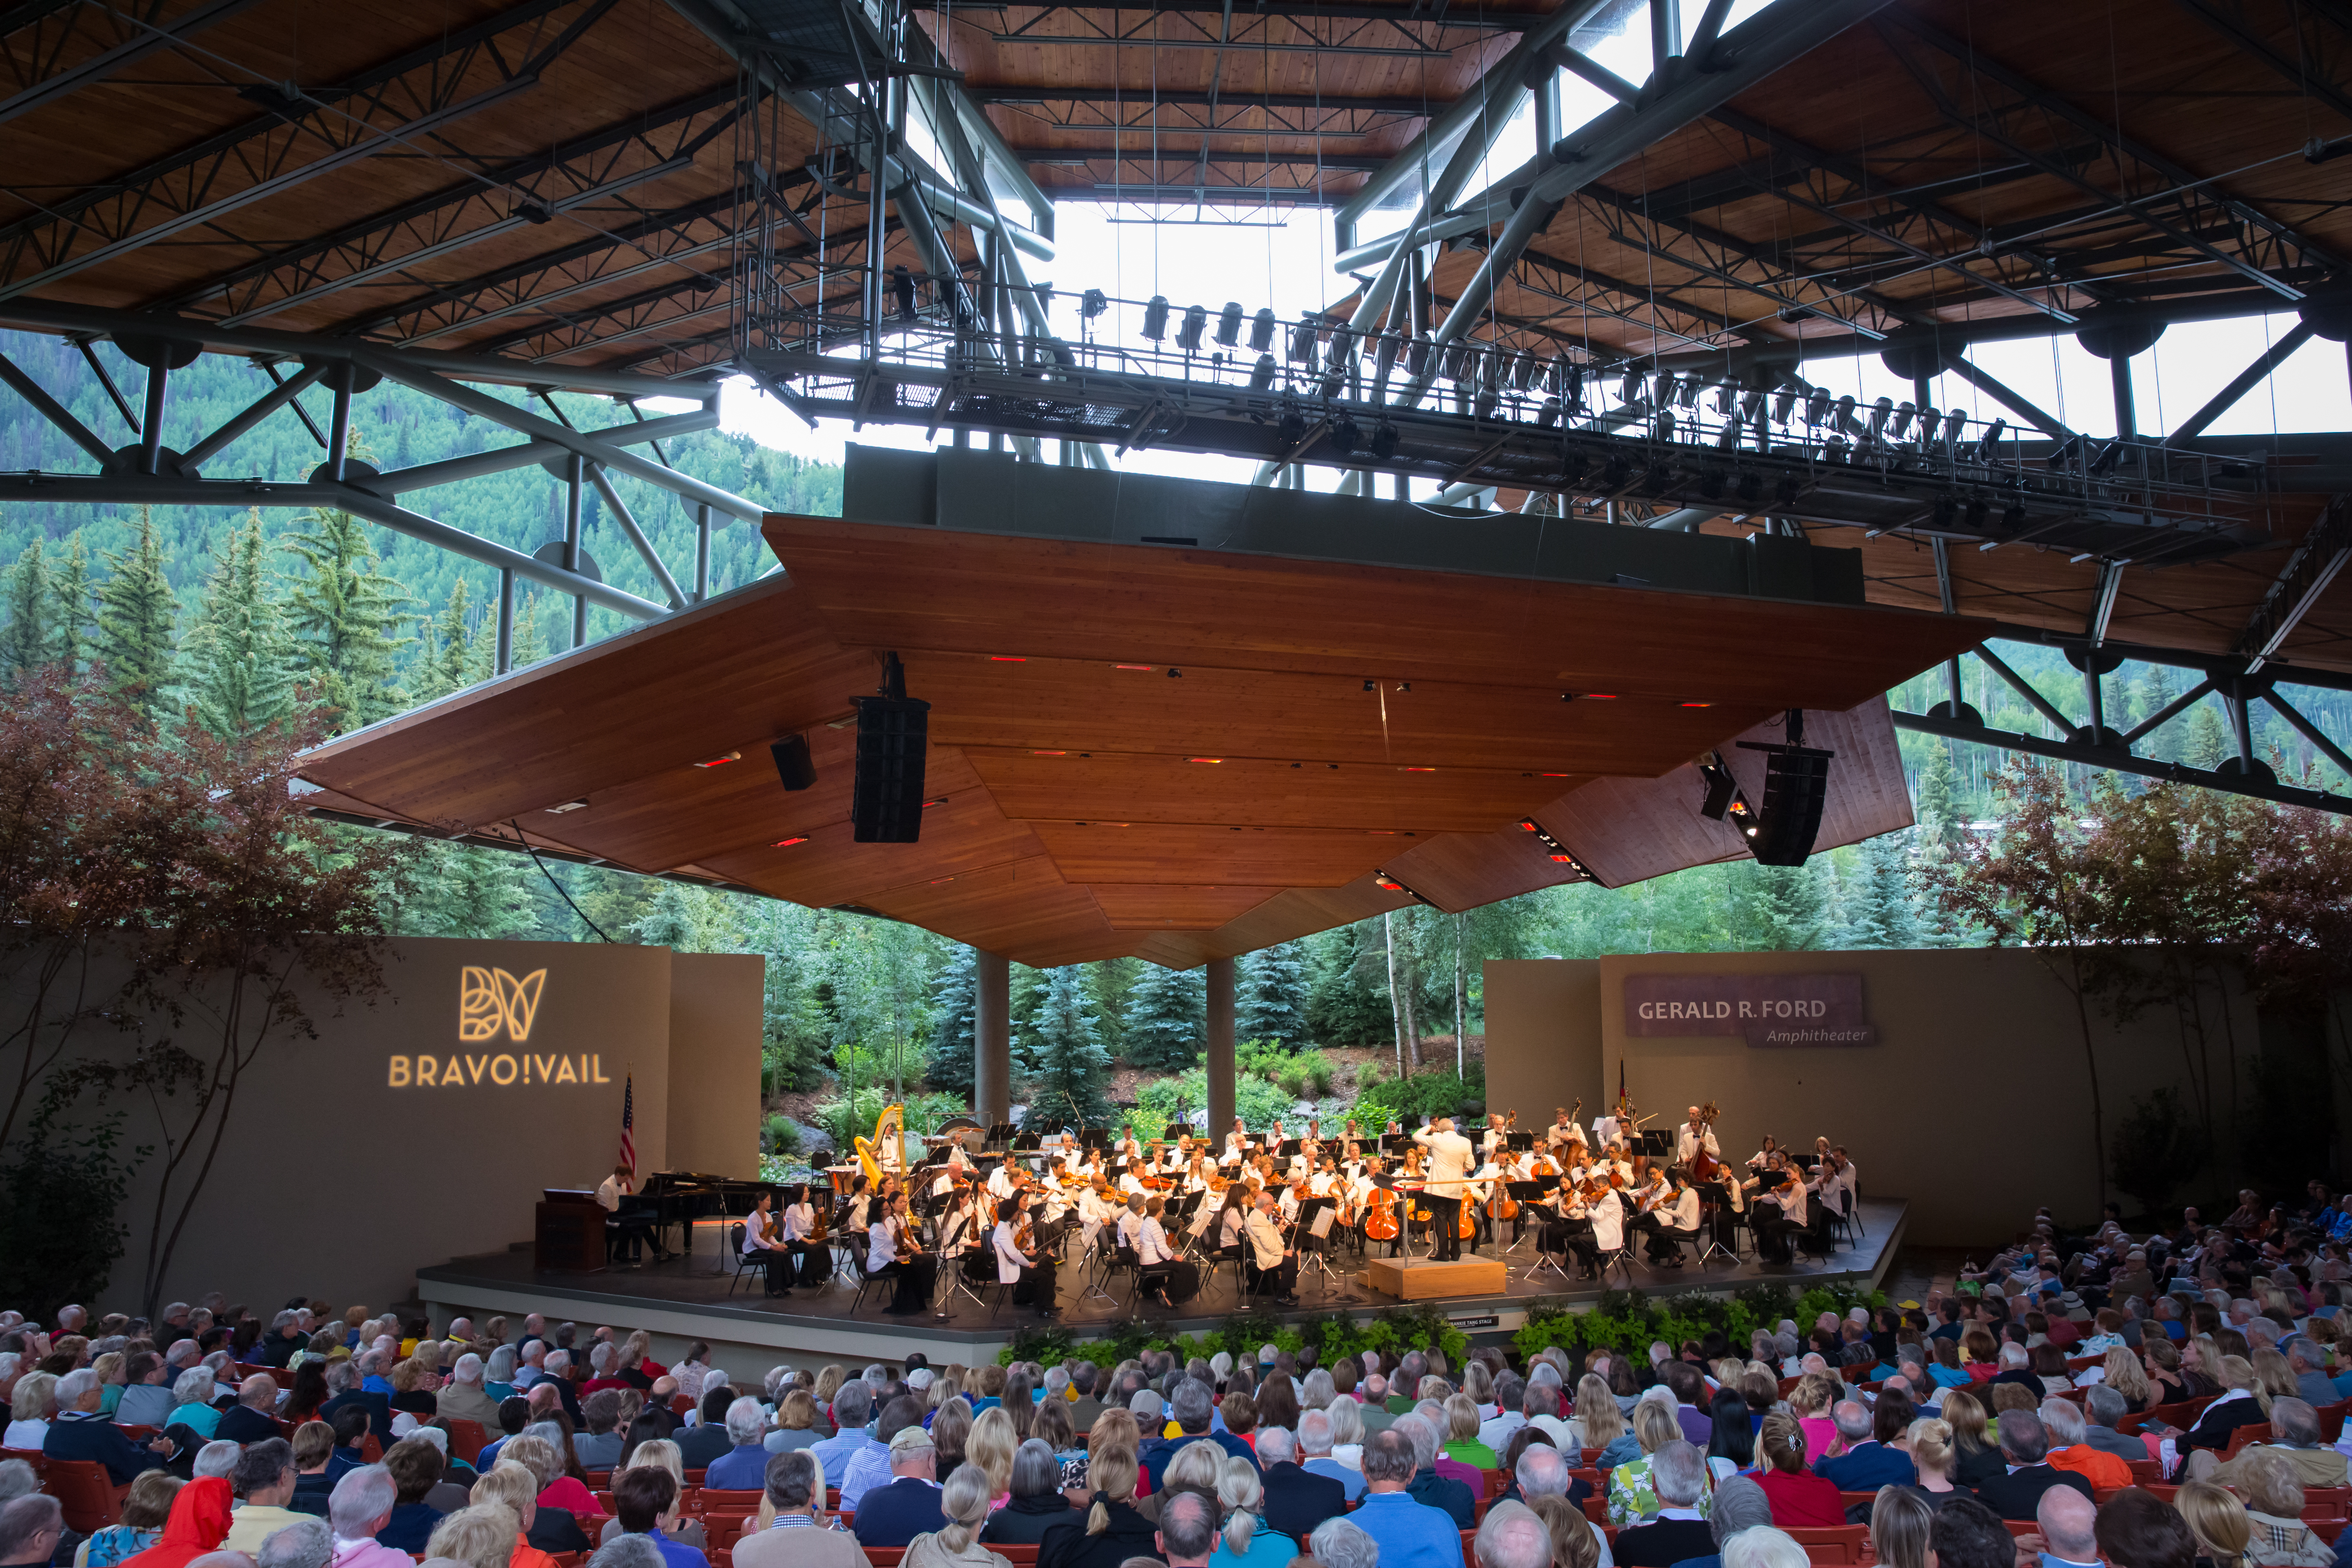 The New York Philharmonic performs at Bravo! Vail in 2019.